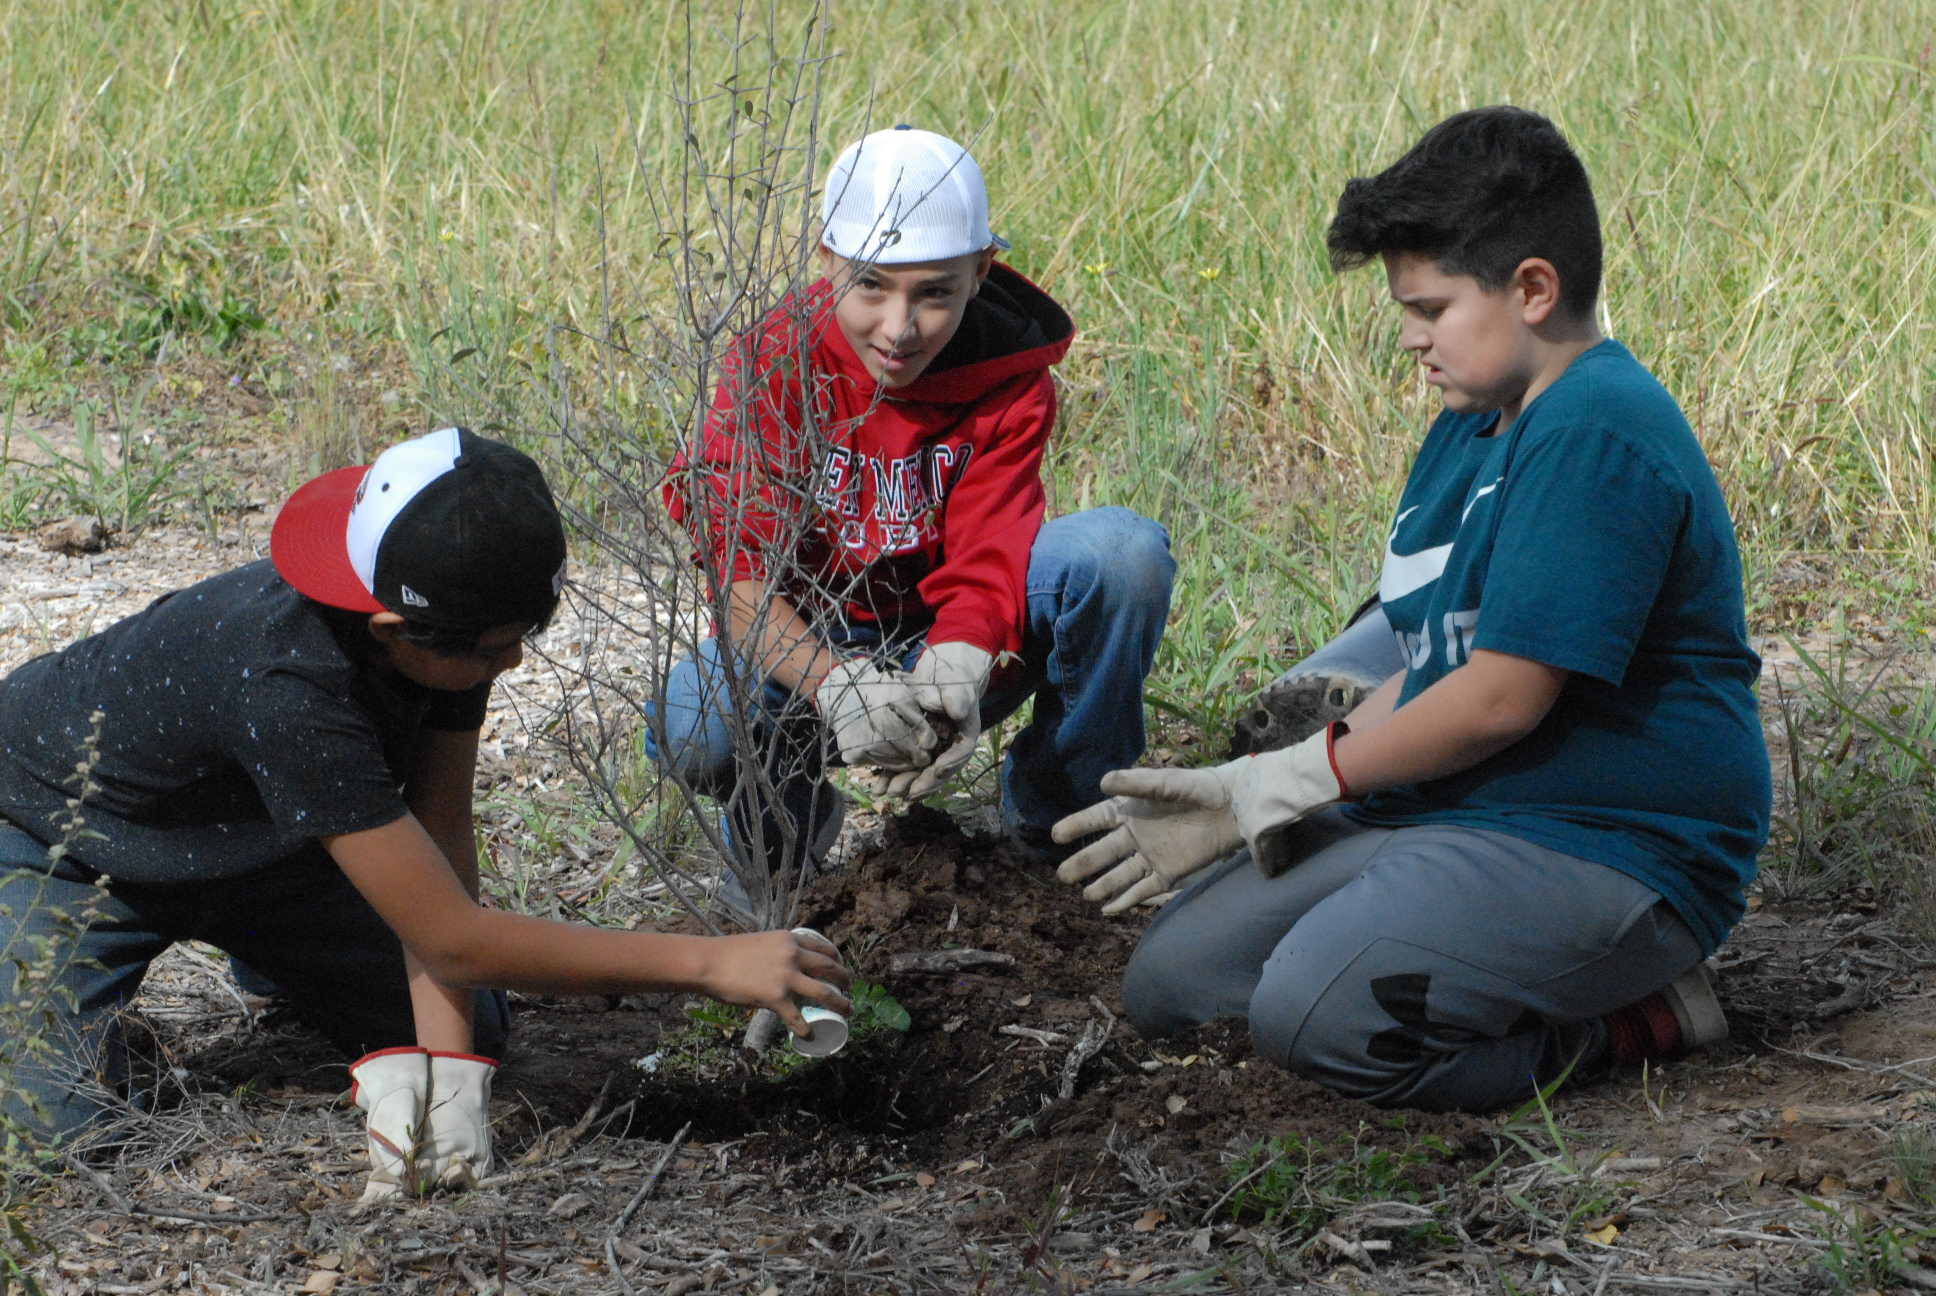 Three children planting a tree.